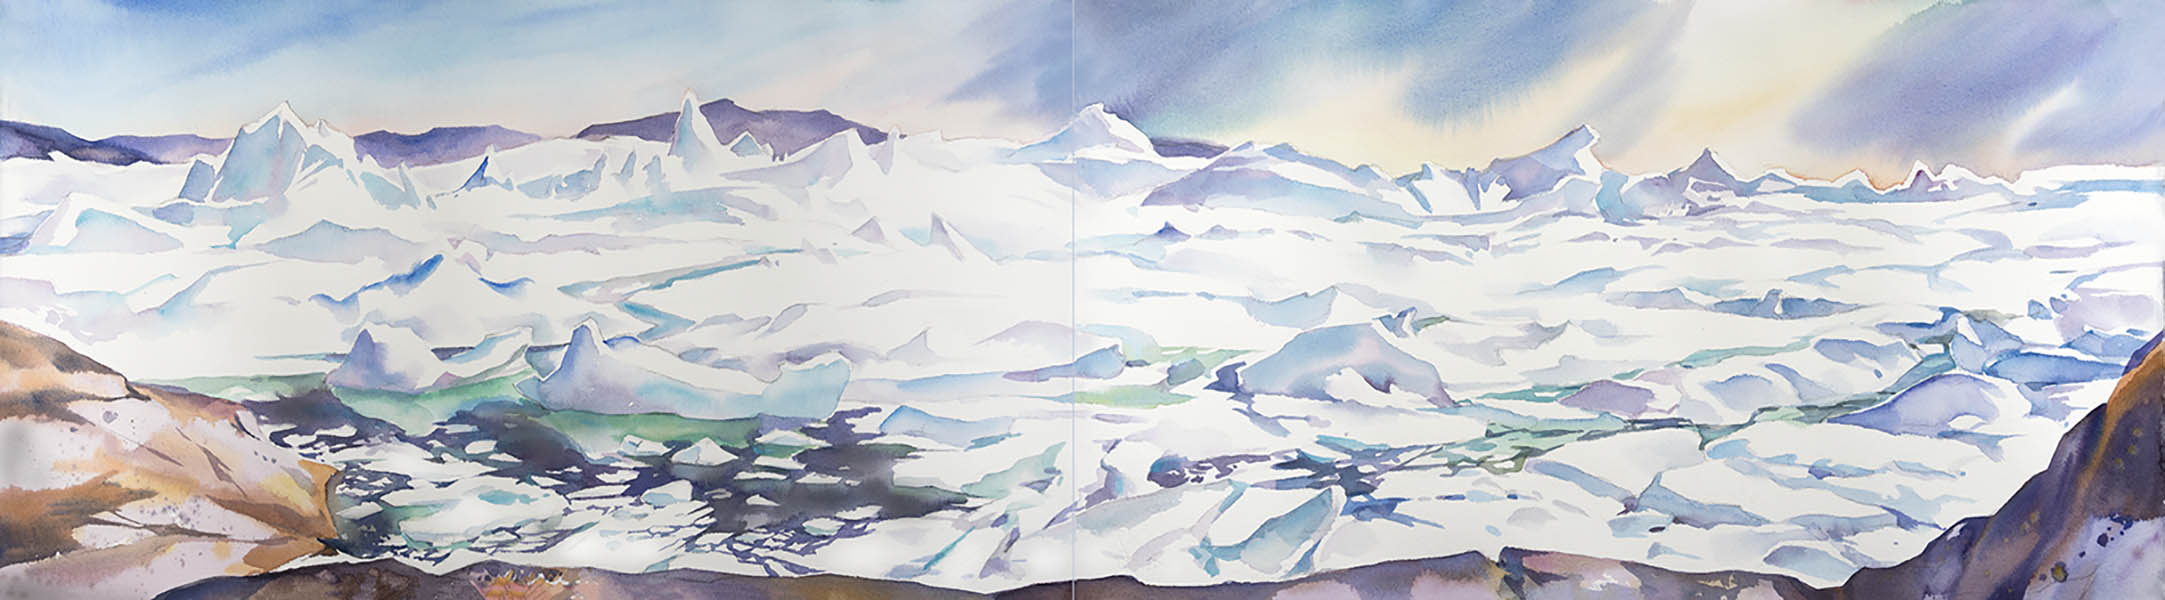 Ilulissat Ice fjord - Jacobsharvn glacier, 15 x 44in watercolour,diptych - Greenland  (available for sale)